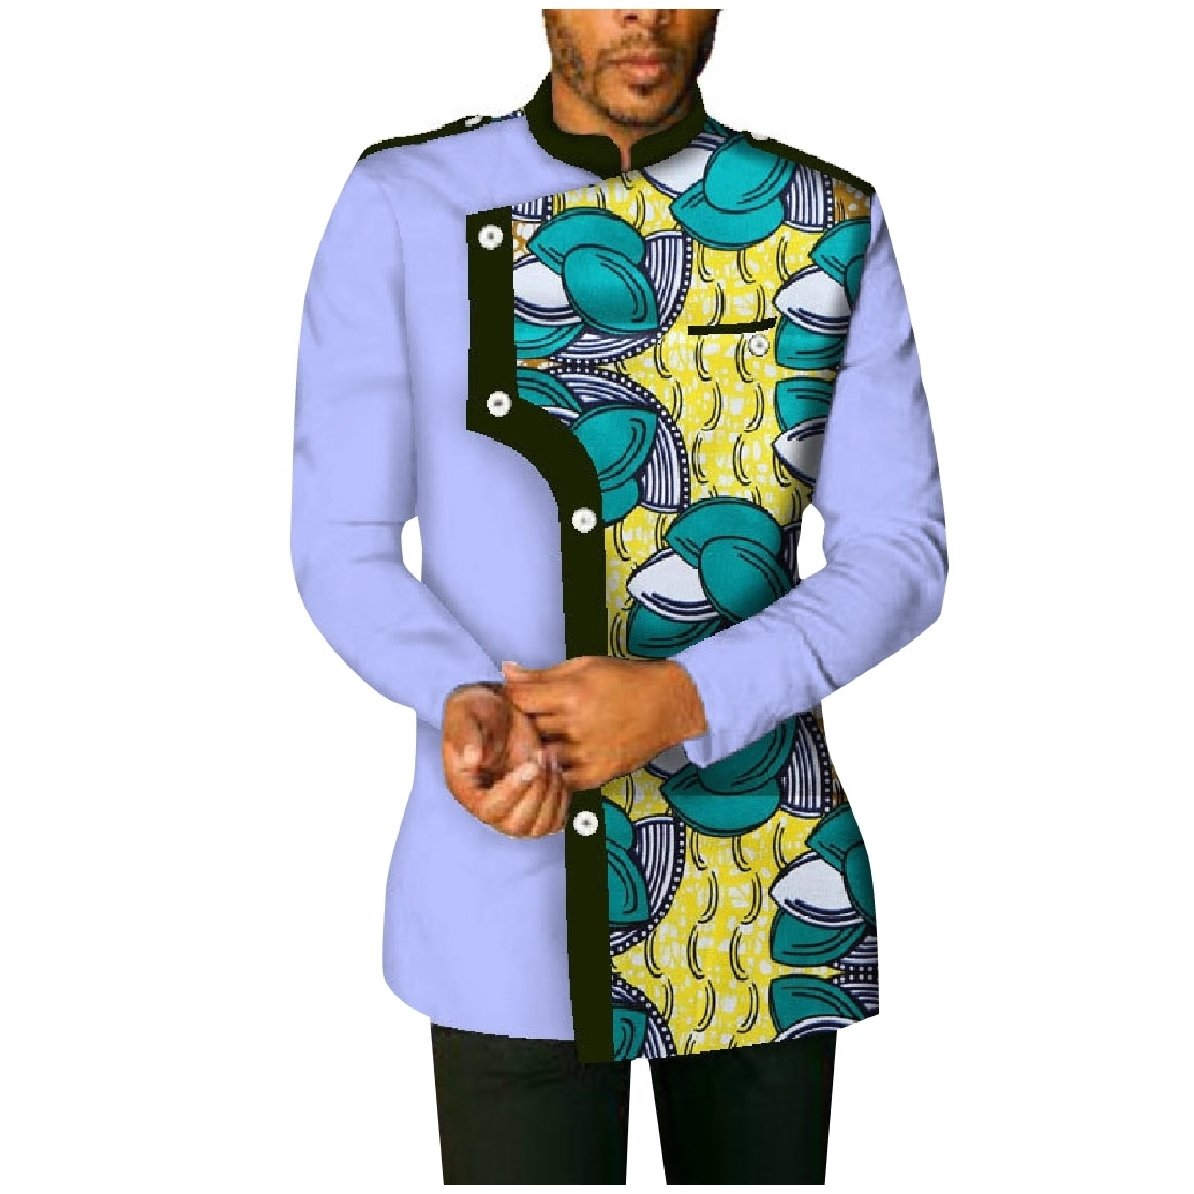 YUNY Mens Plus-Size Cotton African Printed Long-Sleeve Western Shirt Green 4XL